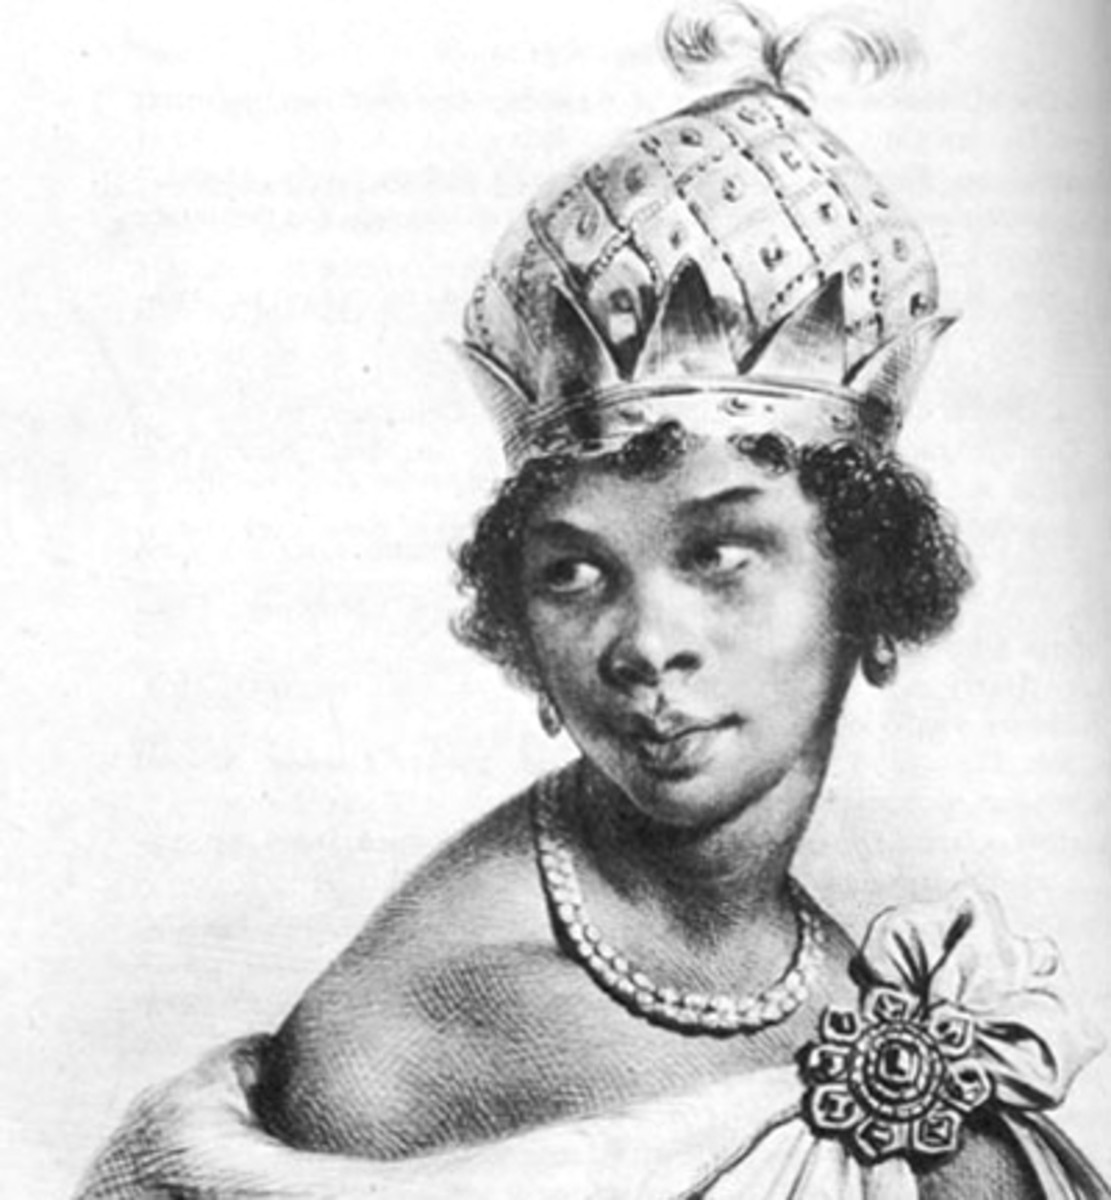 Queen Ann Nzhingha, 1583 - 1663. she died at the age of Eighty. She ruled Angola for Over Thirty years. she awakened the spirit of Nationalism and African Unity as a Warrior Queen with an Army of Amazon Women.